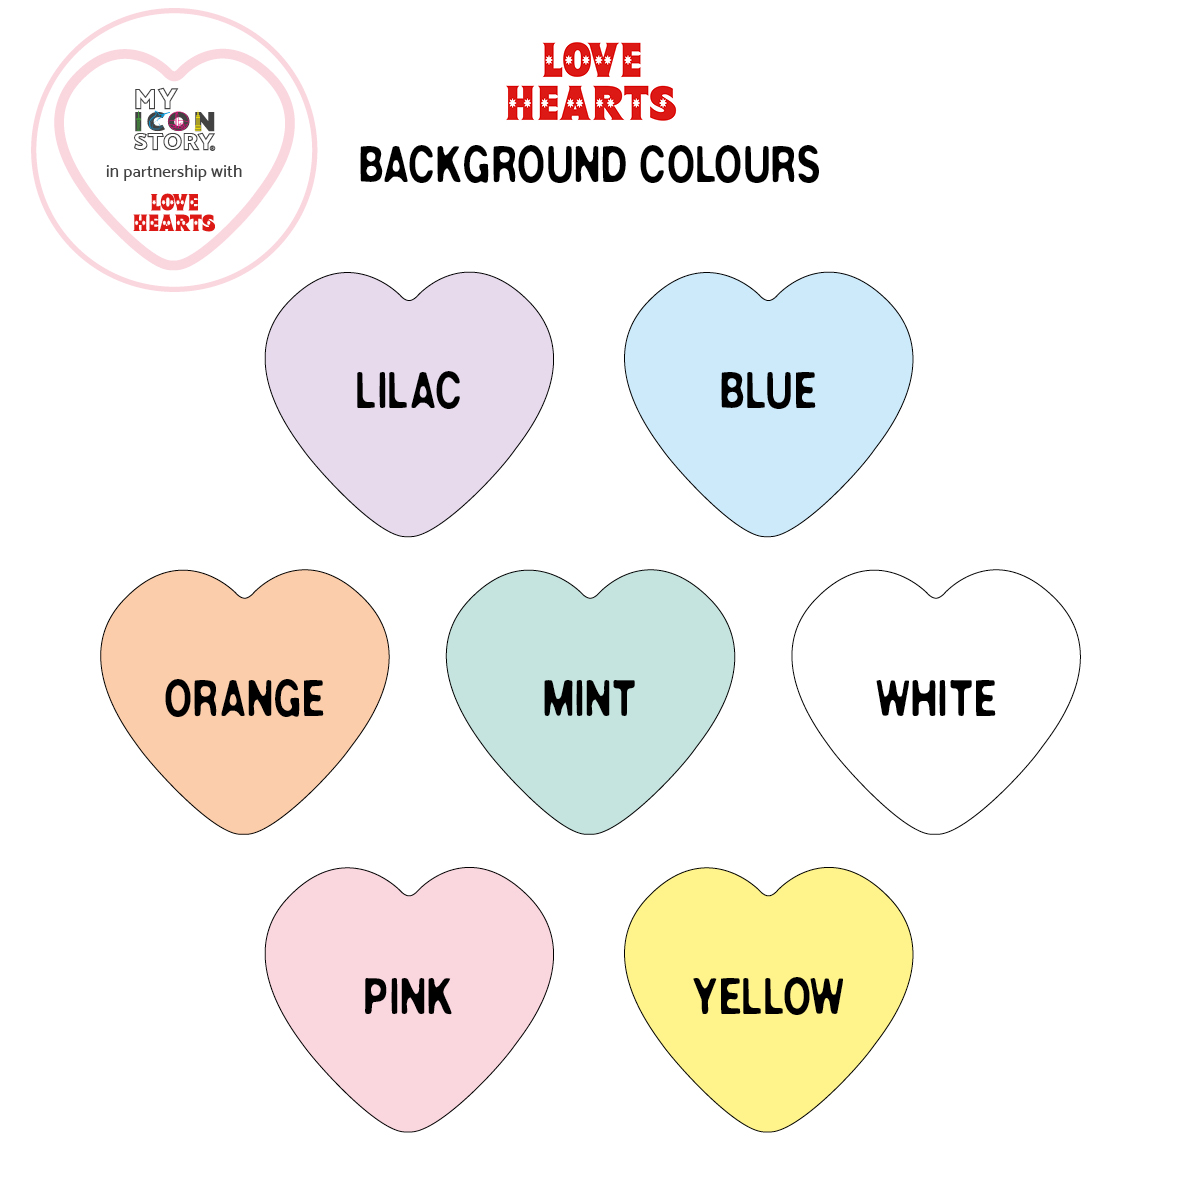 Love hearts background colours